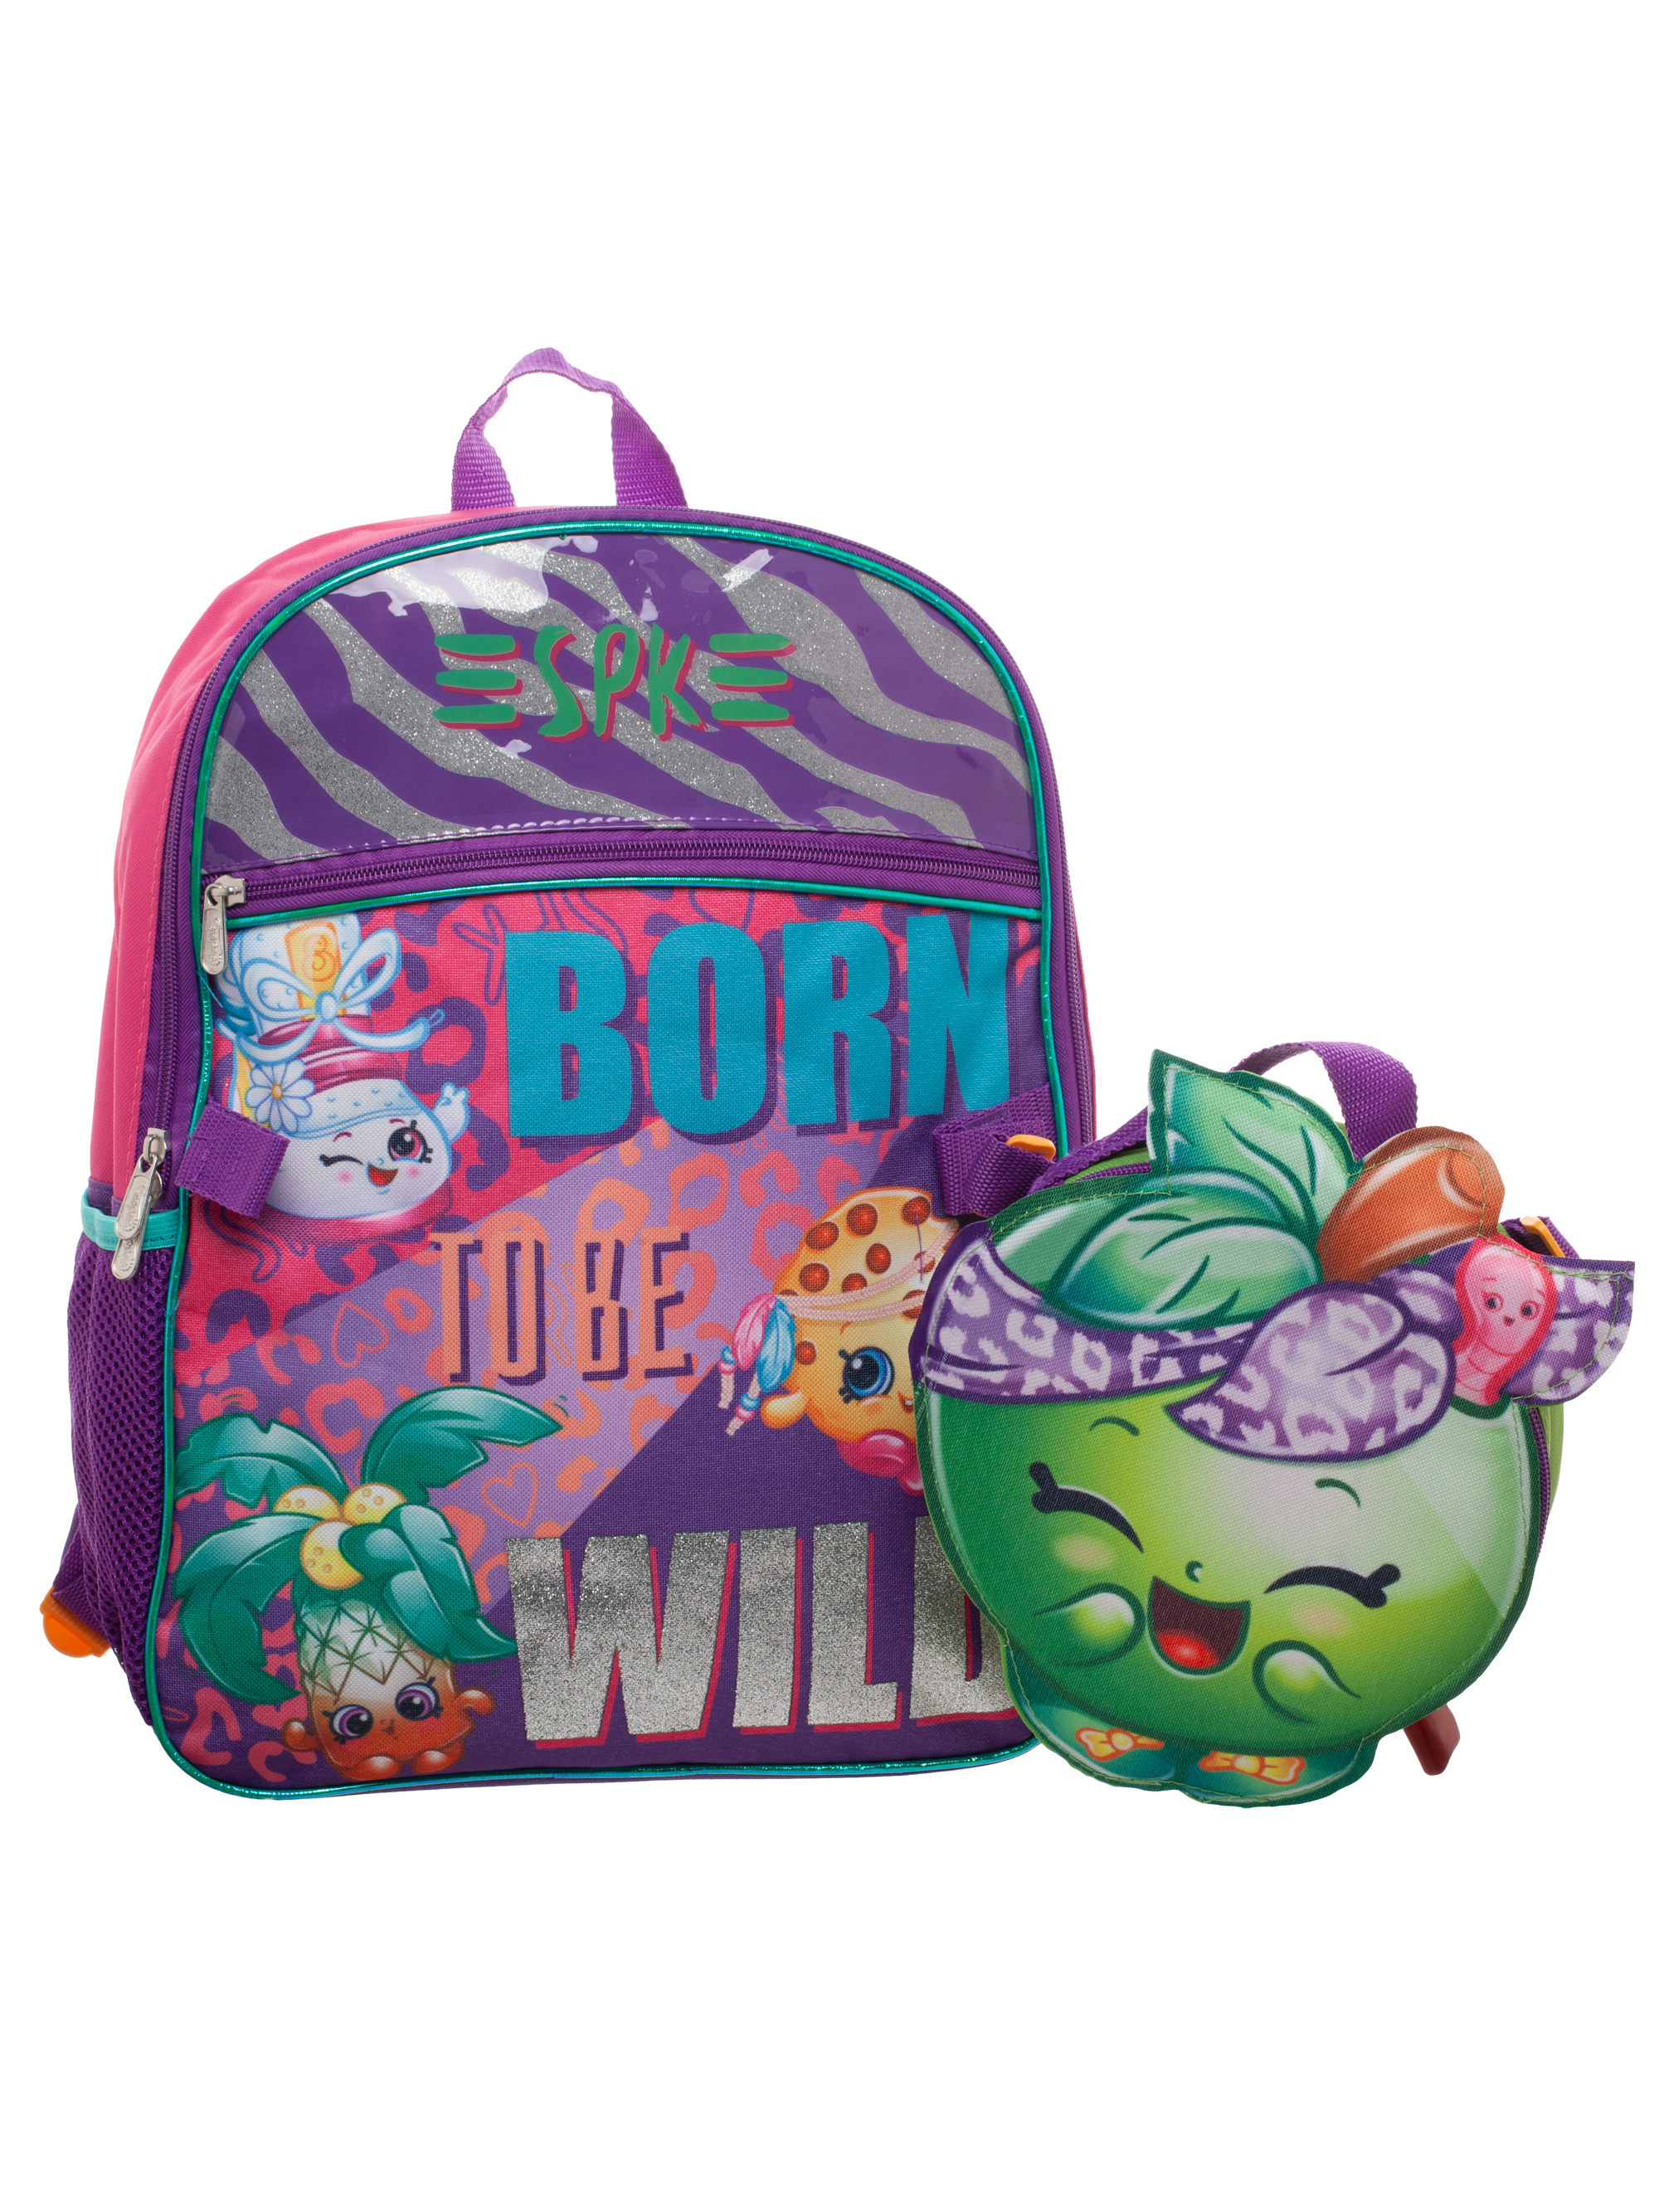 Shopkins Backpack With Lunch